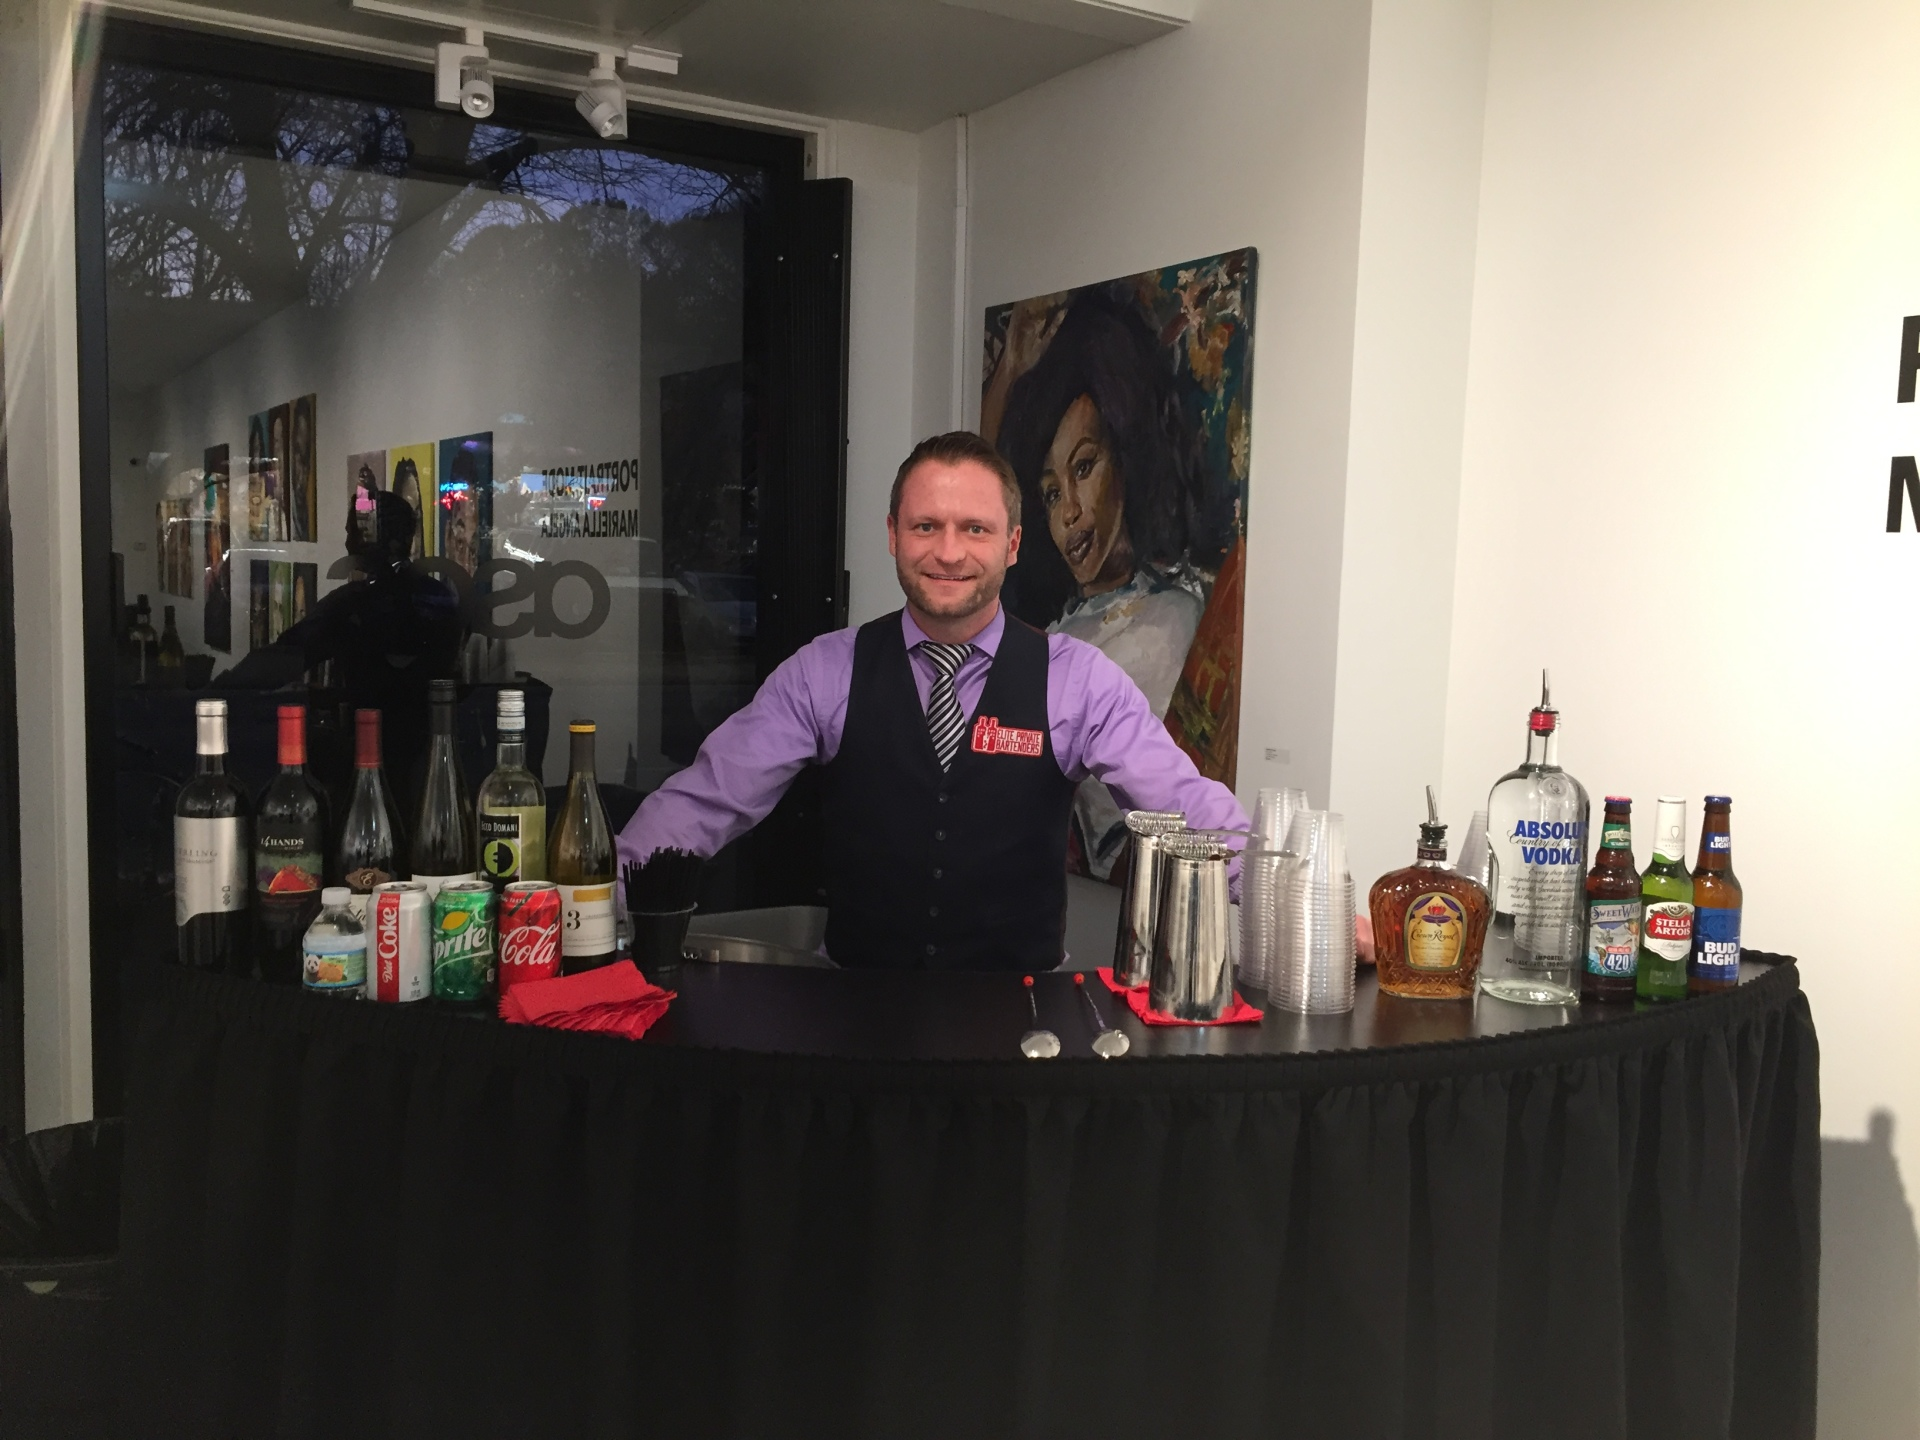 Bar service at art gallery